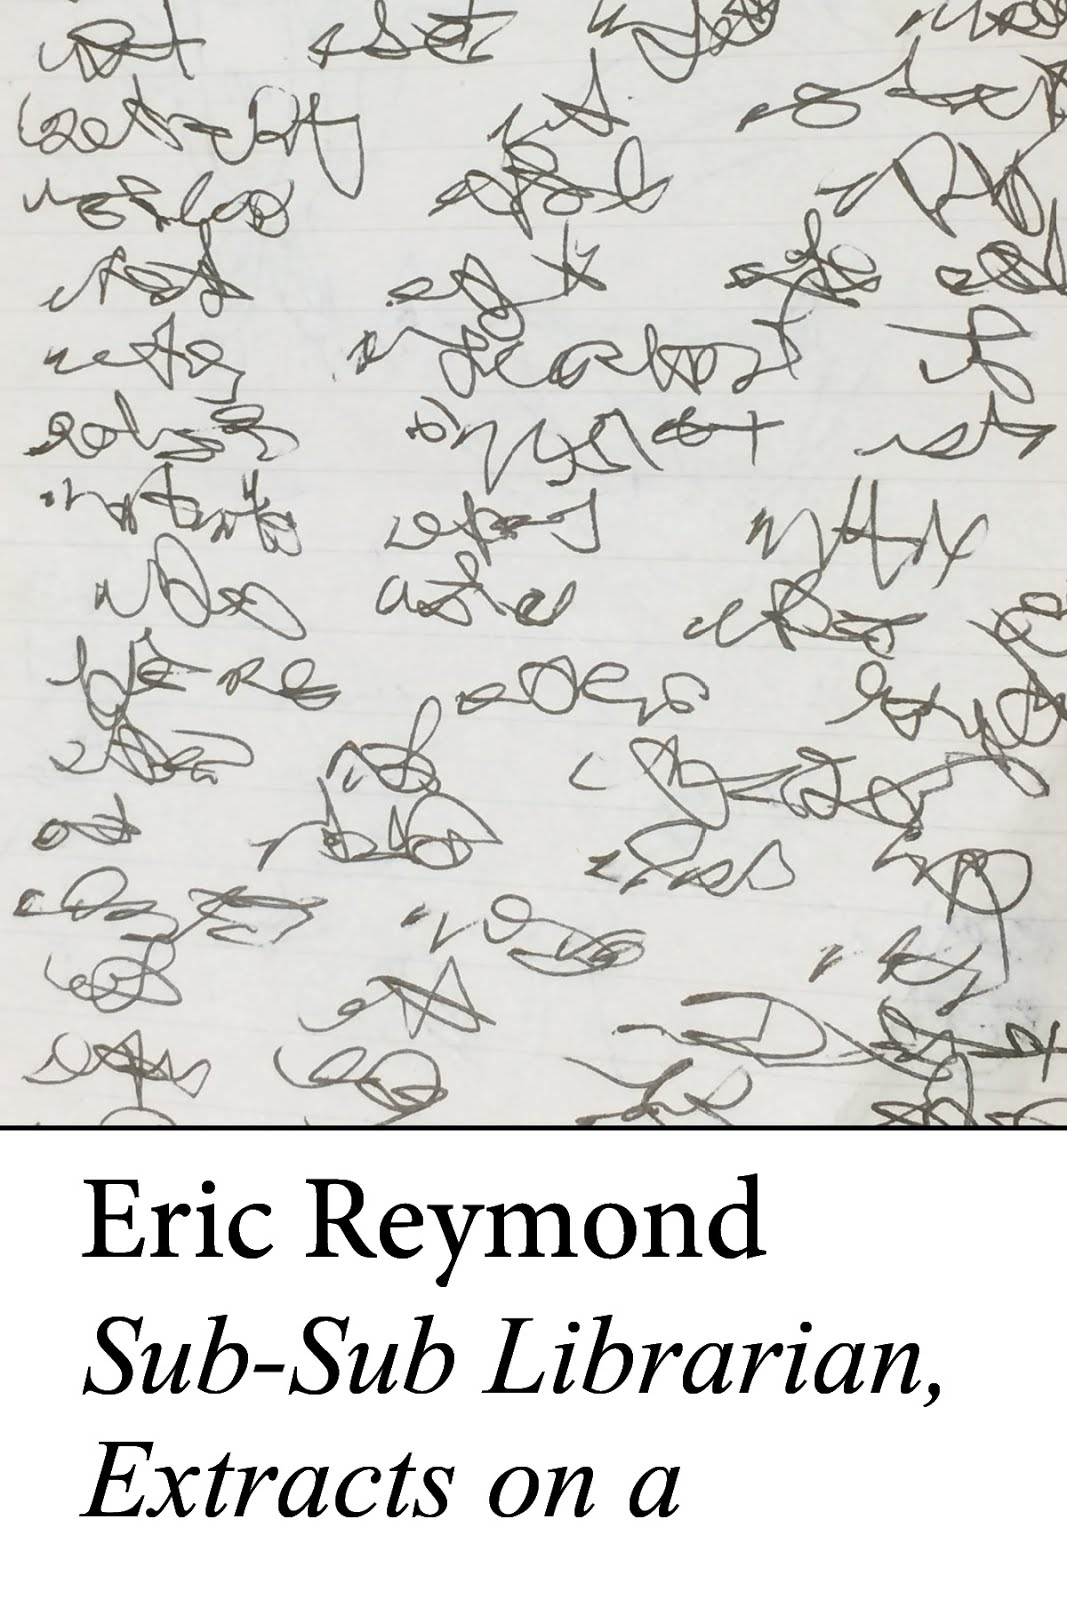 SUB-SUB LIBRARIAN, EXTRACTS ON A / Eric Reymond